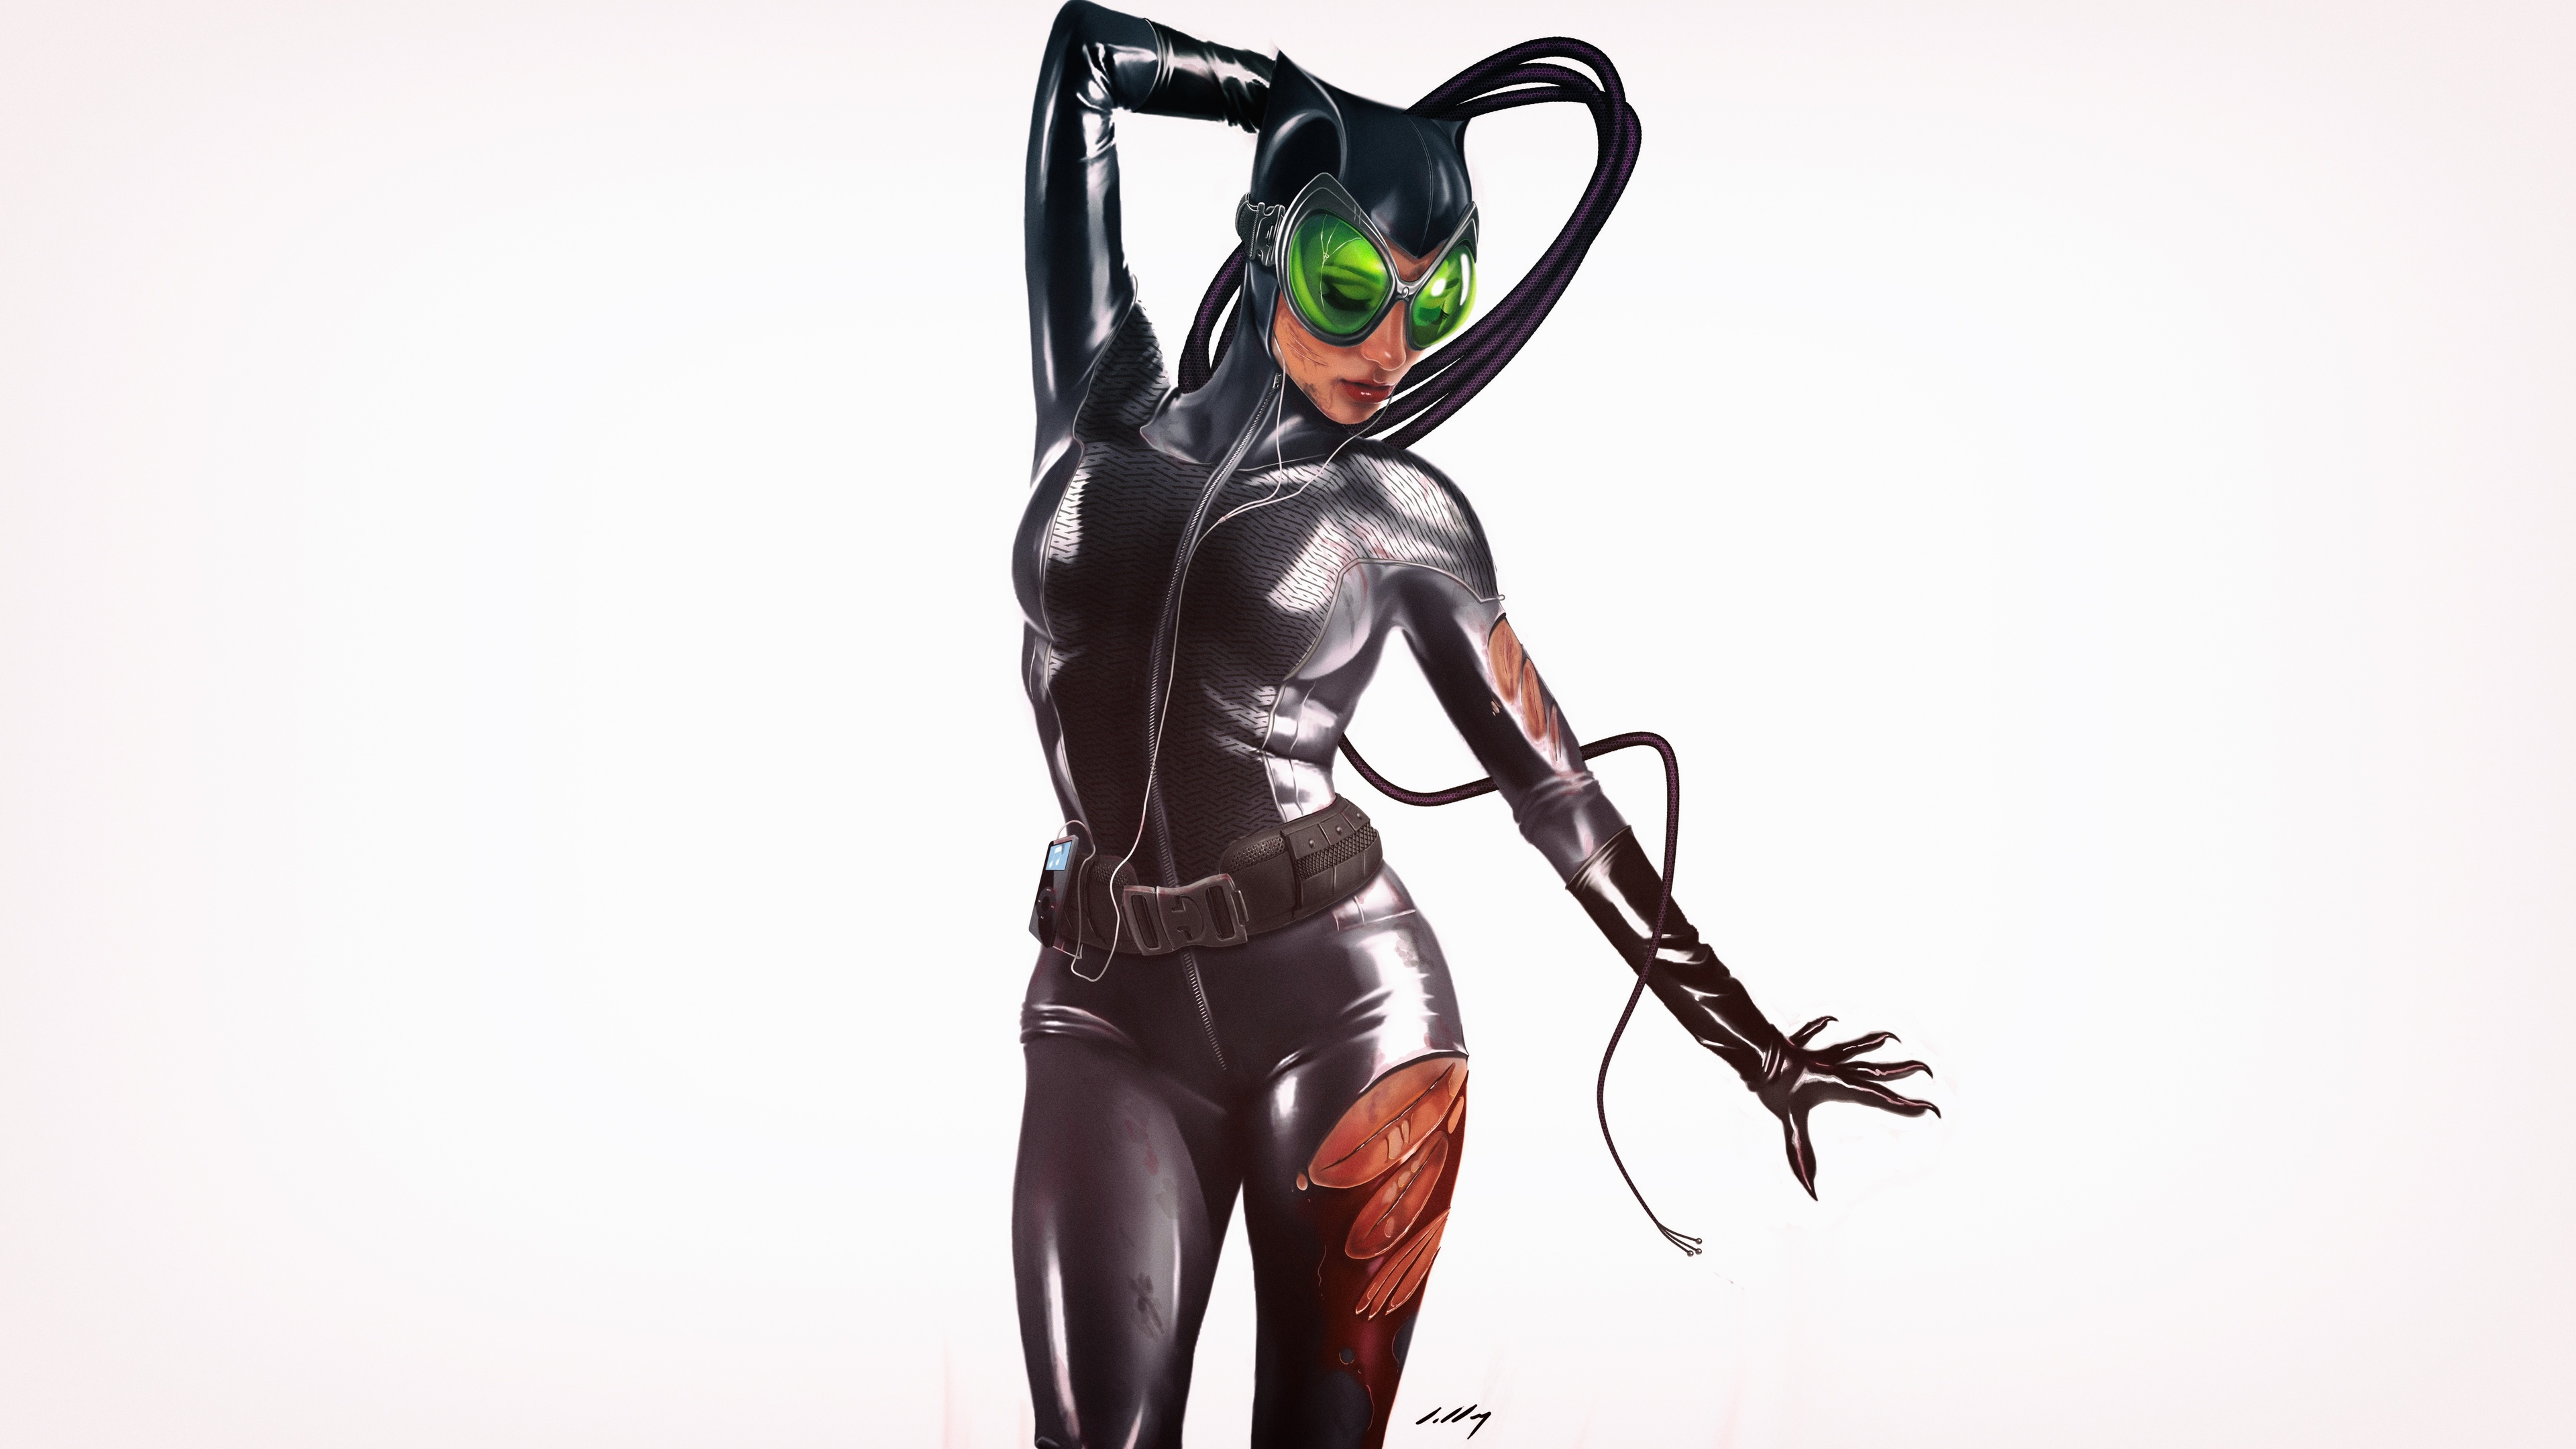 catwoman 4k art 1537646009 - Catwoman 4k Art - supervillain wallpapers, superheroes wallpapers, digital art wallpapers, deviantart wallpapers, catwoman wallpapers, artwork wallpapers, artist wallpapers, art wallpapers, 4k-wallpapers